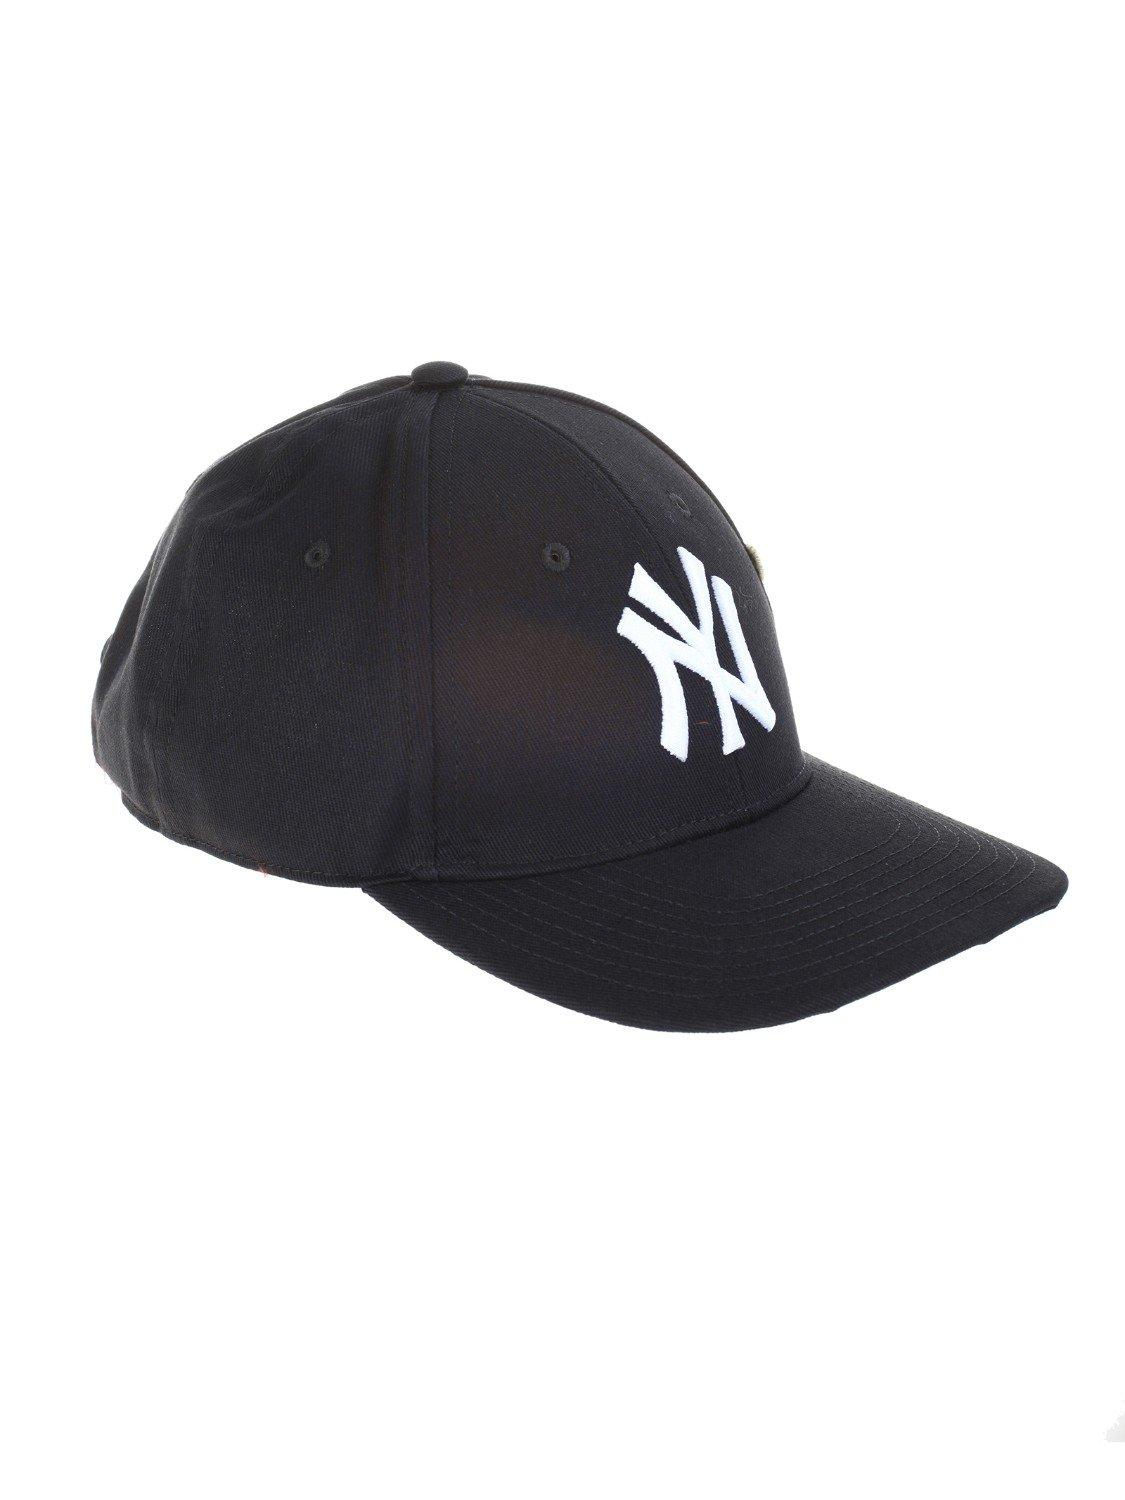 2191304b5 Gucci Baseball Cap With Ny Yankees Patch in Black for Men - Lyst